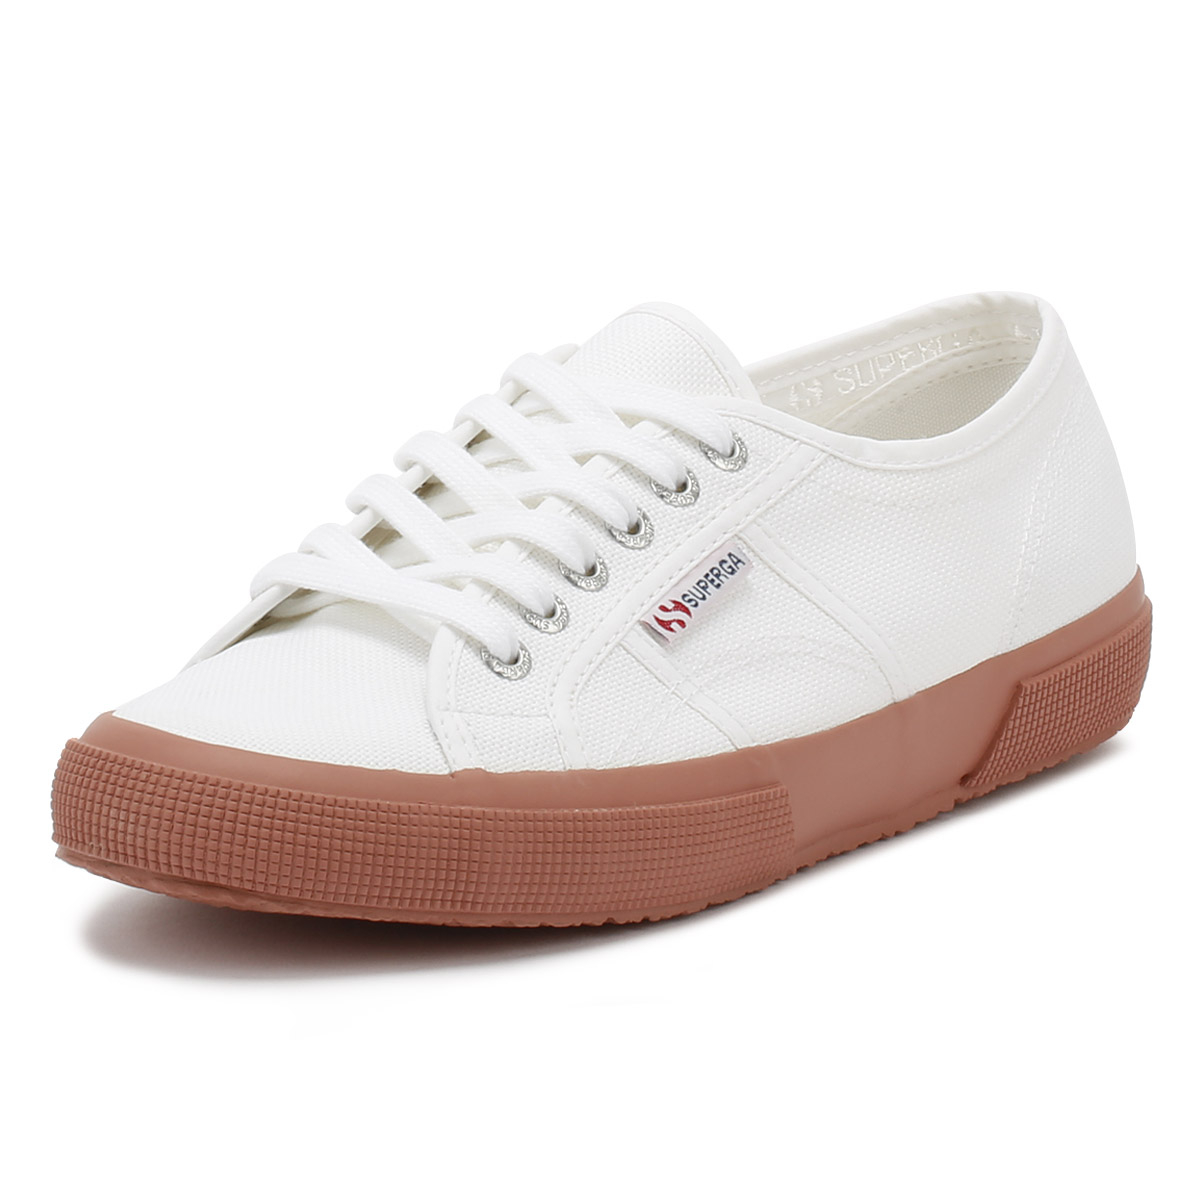 23e4c3ab1067 Details about Superga Womens Trainers White   Rose 2750 Cotu Lace Up Sport  Casual Shoes